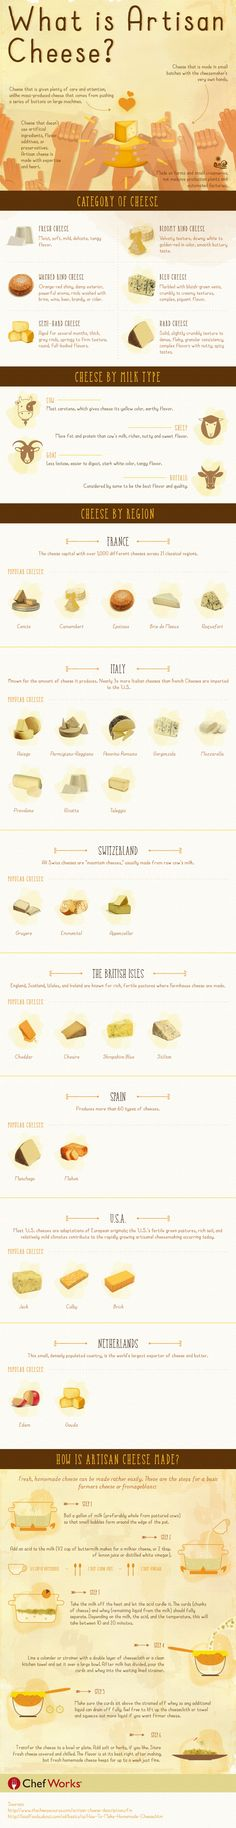 An infographic that explains what artisan cheese is, with different regional cheese explained and tips on how to make your own >>  https://www.finedininglovers.com/blog/food-drinks/artisan-cheese-infographic/